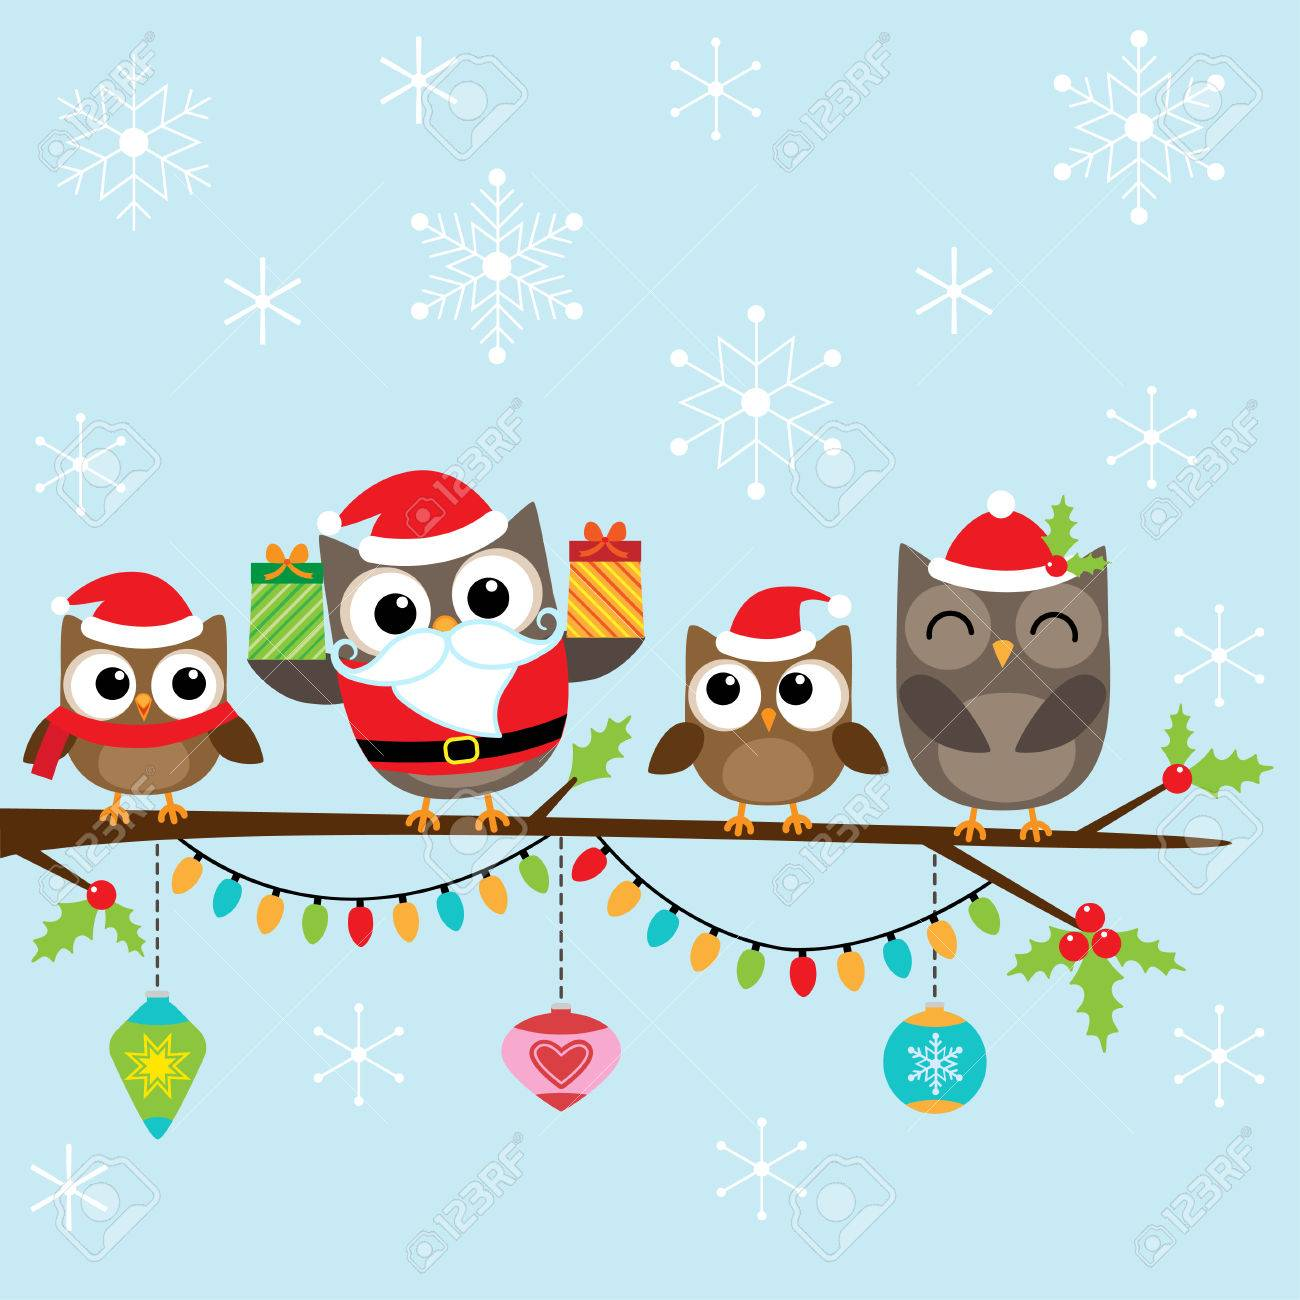 hight resolution of christmas card with family of cute owls stock vector 48520045